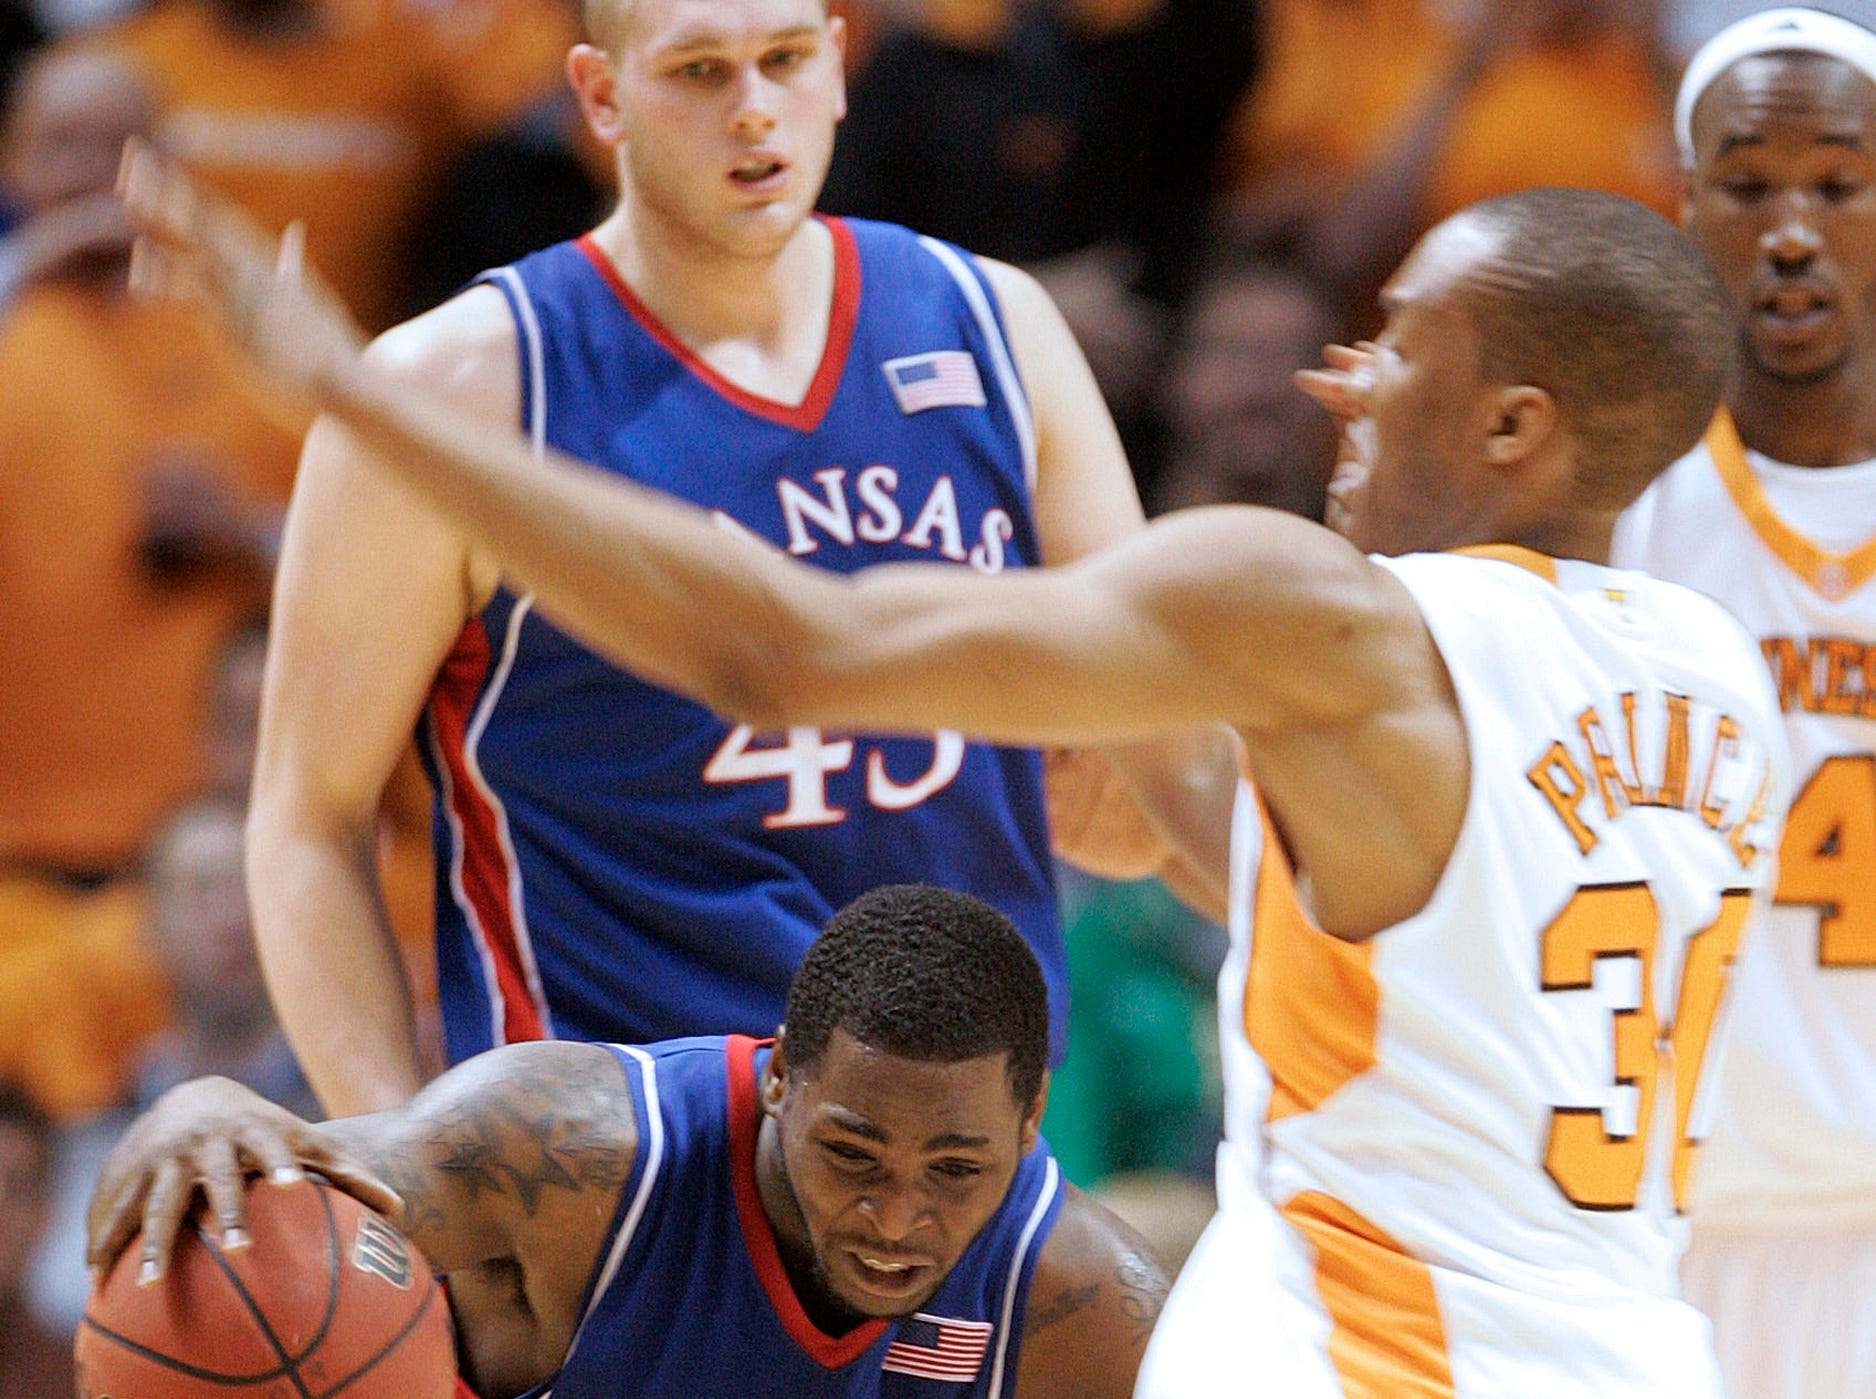 Kansas' Sherron Collins (4) tries to avoid Tennessee's J.P. Prince, right, during the second half of an NCAA college basketball game Sunday, Jan. 10, 2010, in Knoxville, Tenn. Tennessee won 76-68.